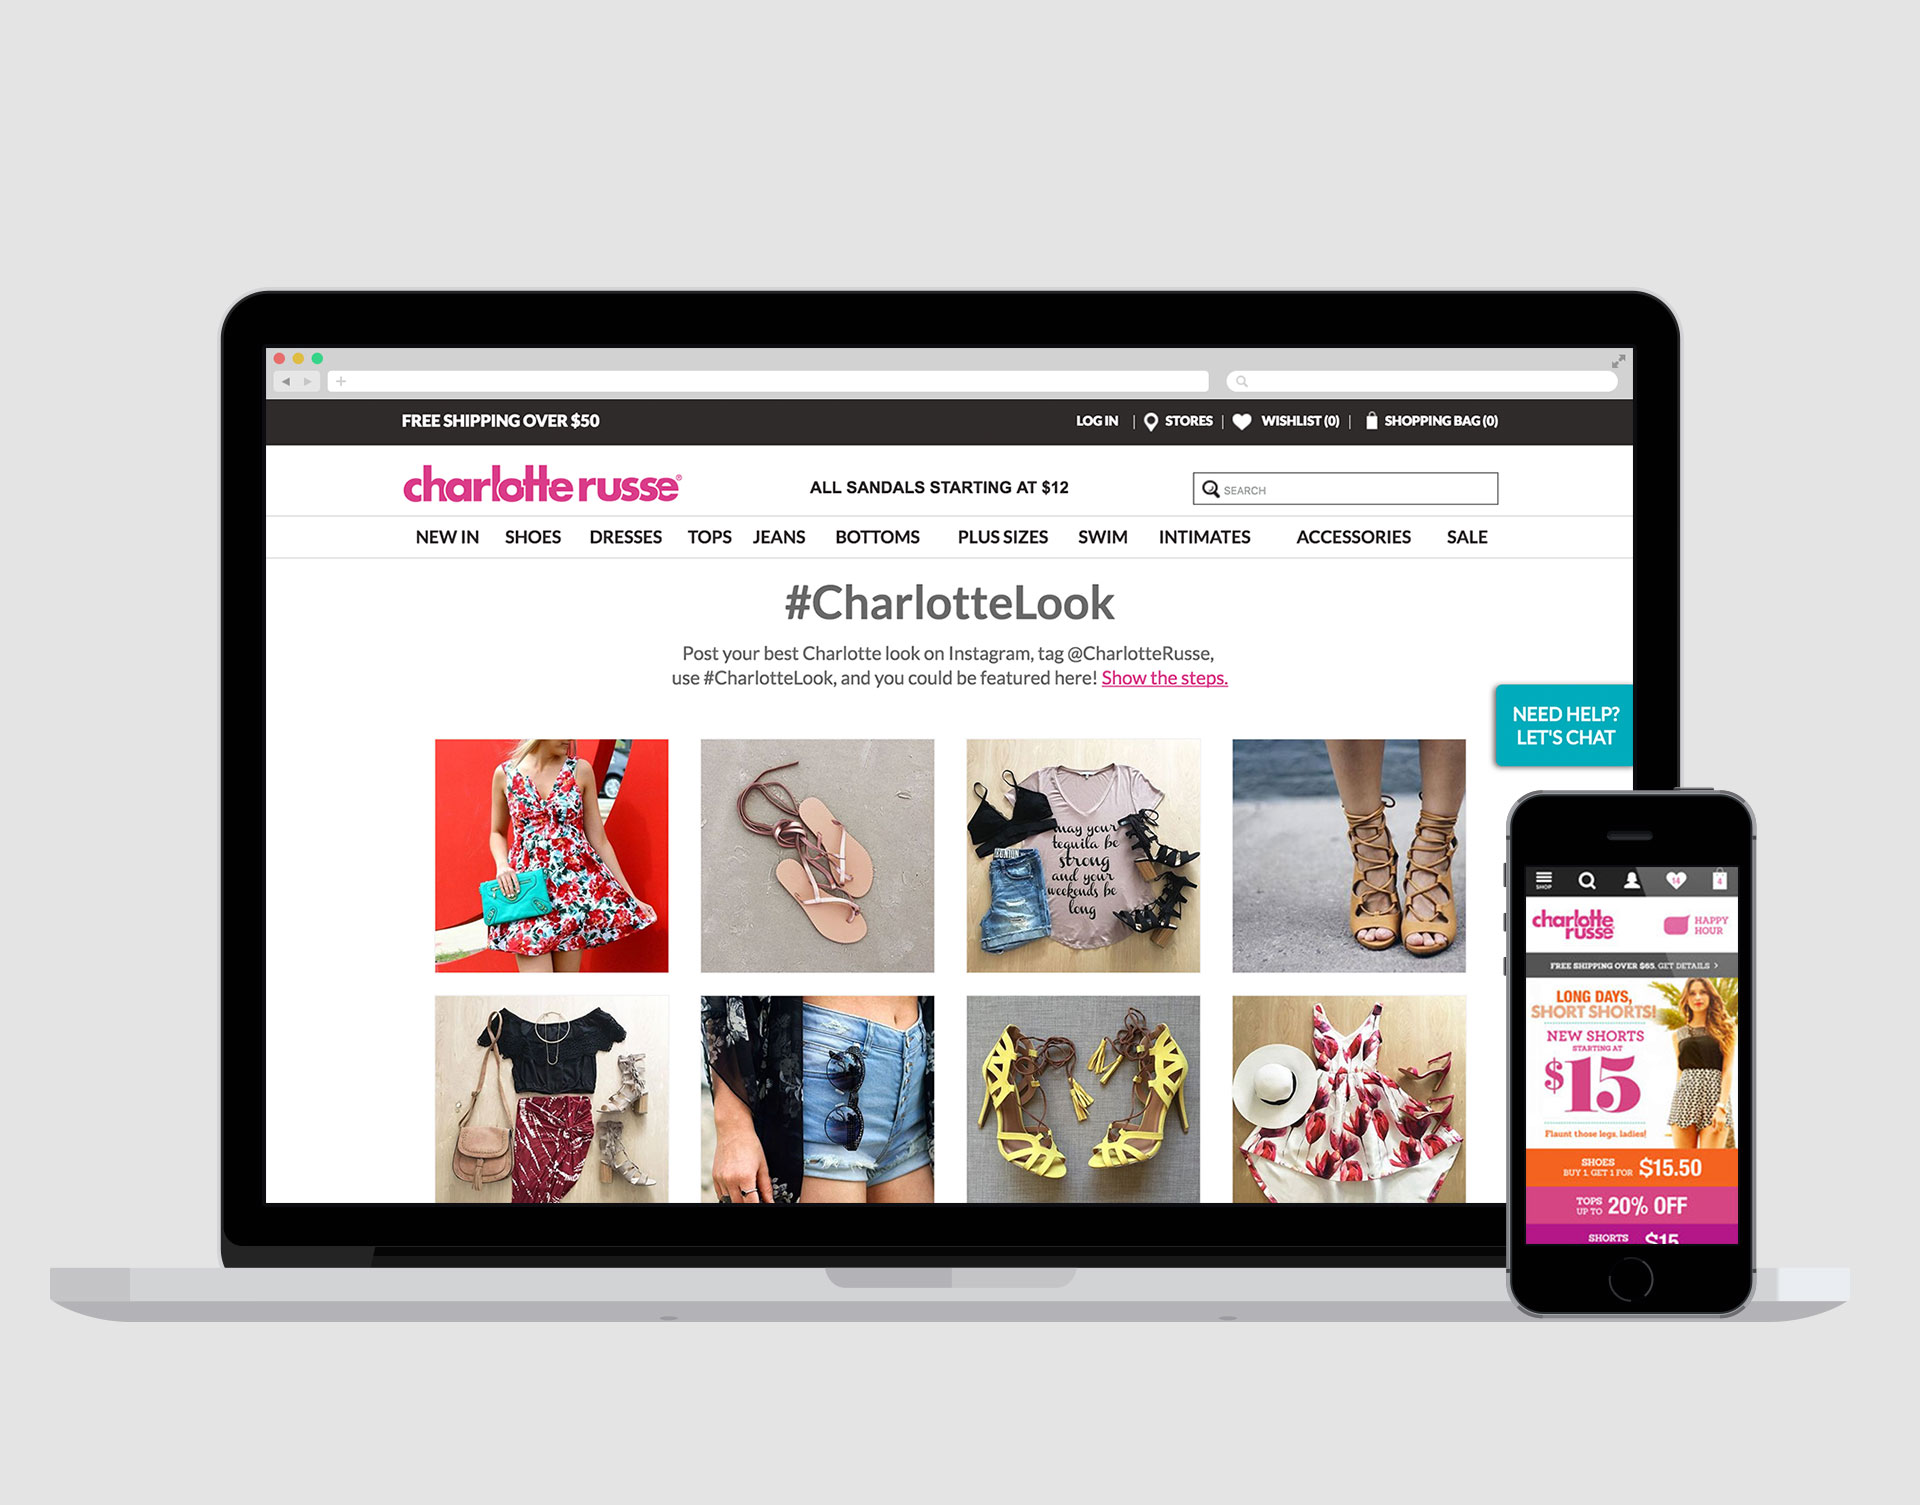 CHARLOTTE RUSSE  SITE REDESIGN + STRATEGY  Following a brand overhaul and site relaunch, a retainer, cross-functional team was engaged to execute campaigns, design site refreshes, perform consumer research, form omni-channel strategies, and measure site performance.     READ MORE →